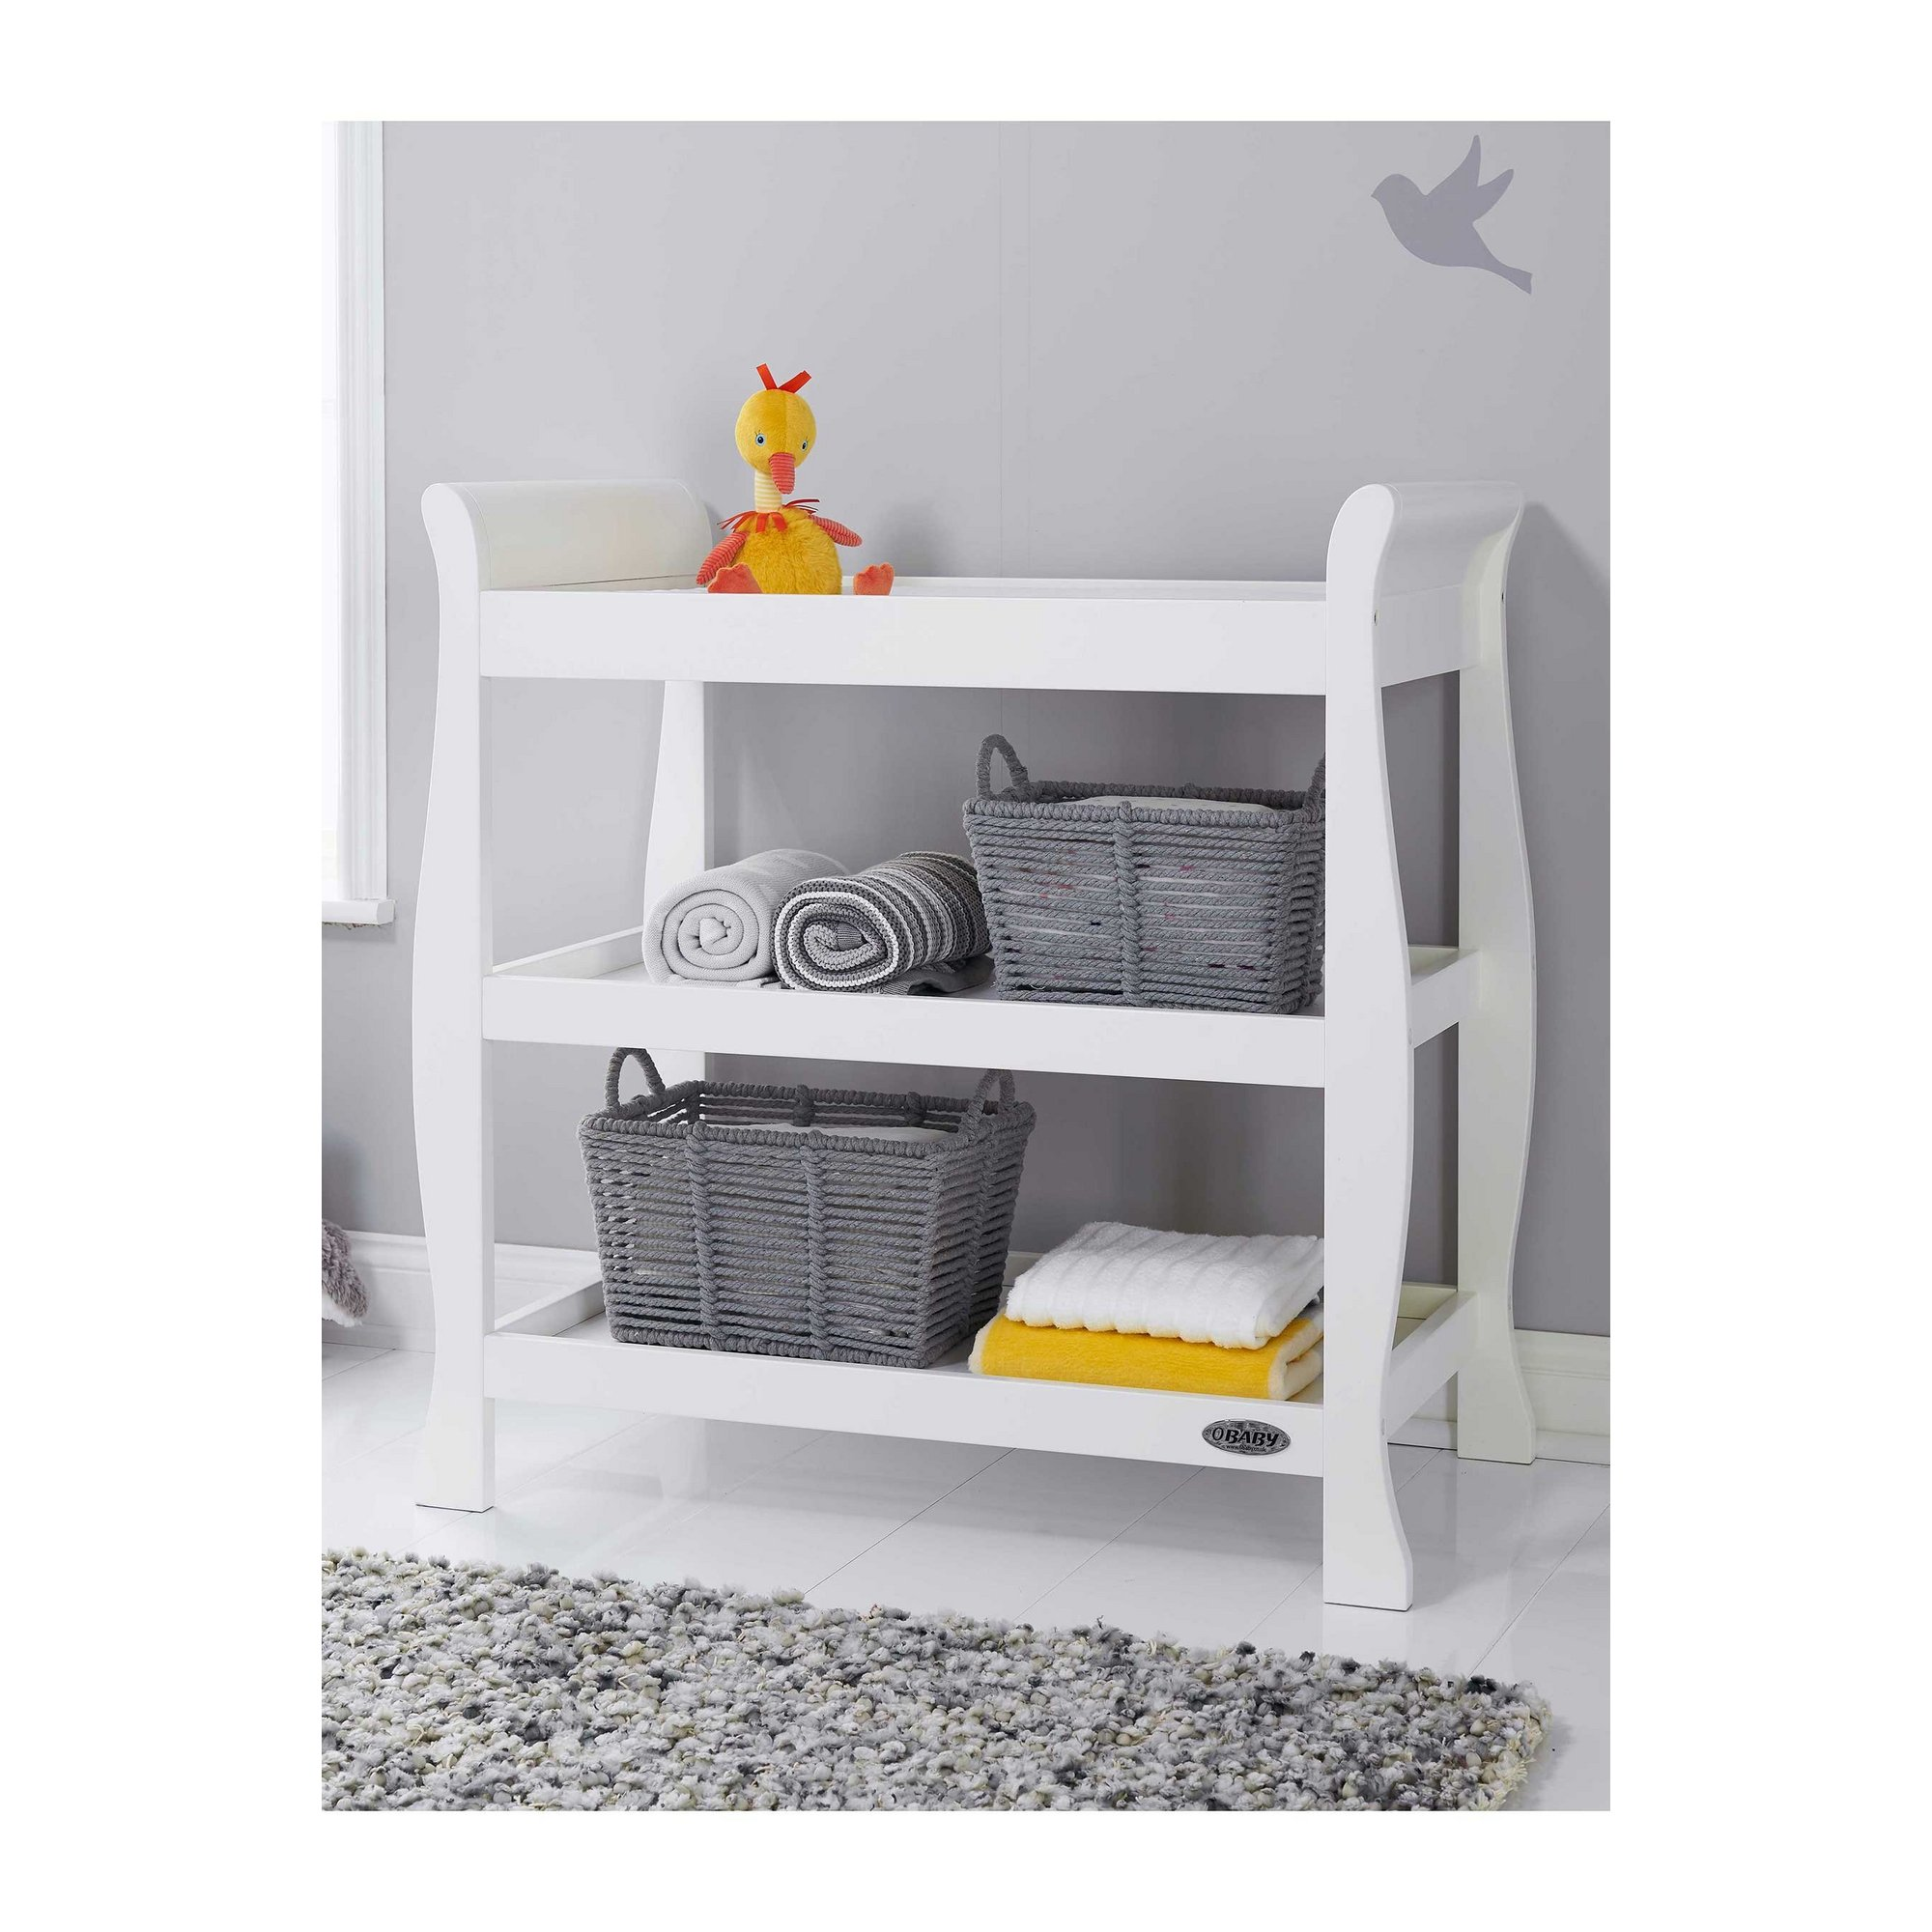 Image of Obaby Stamford Open Changing Unit